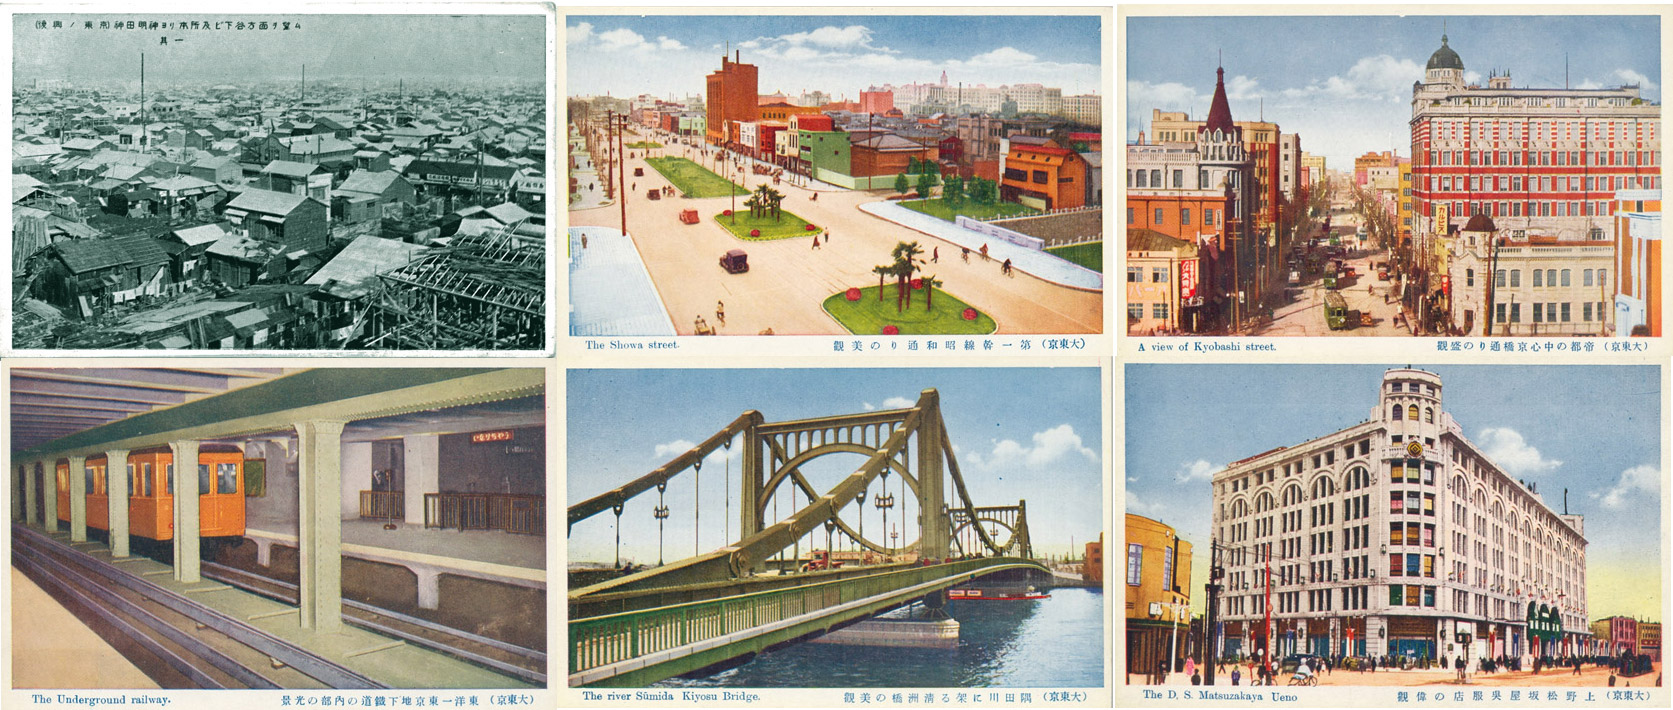 Postcards highlighting reconstruction accomplishments